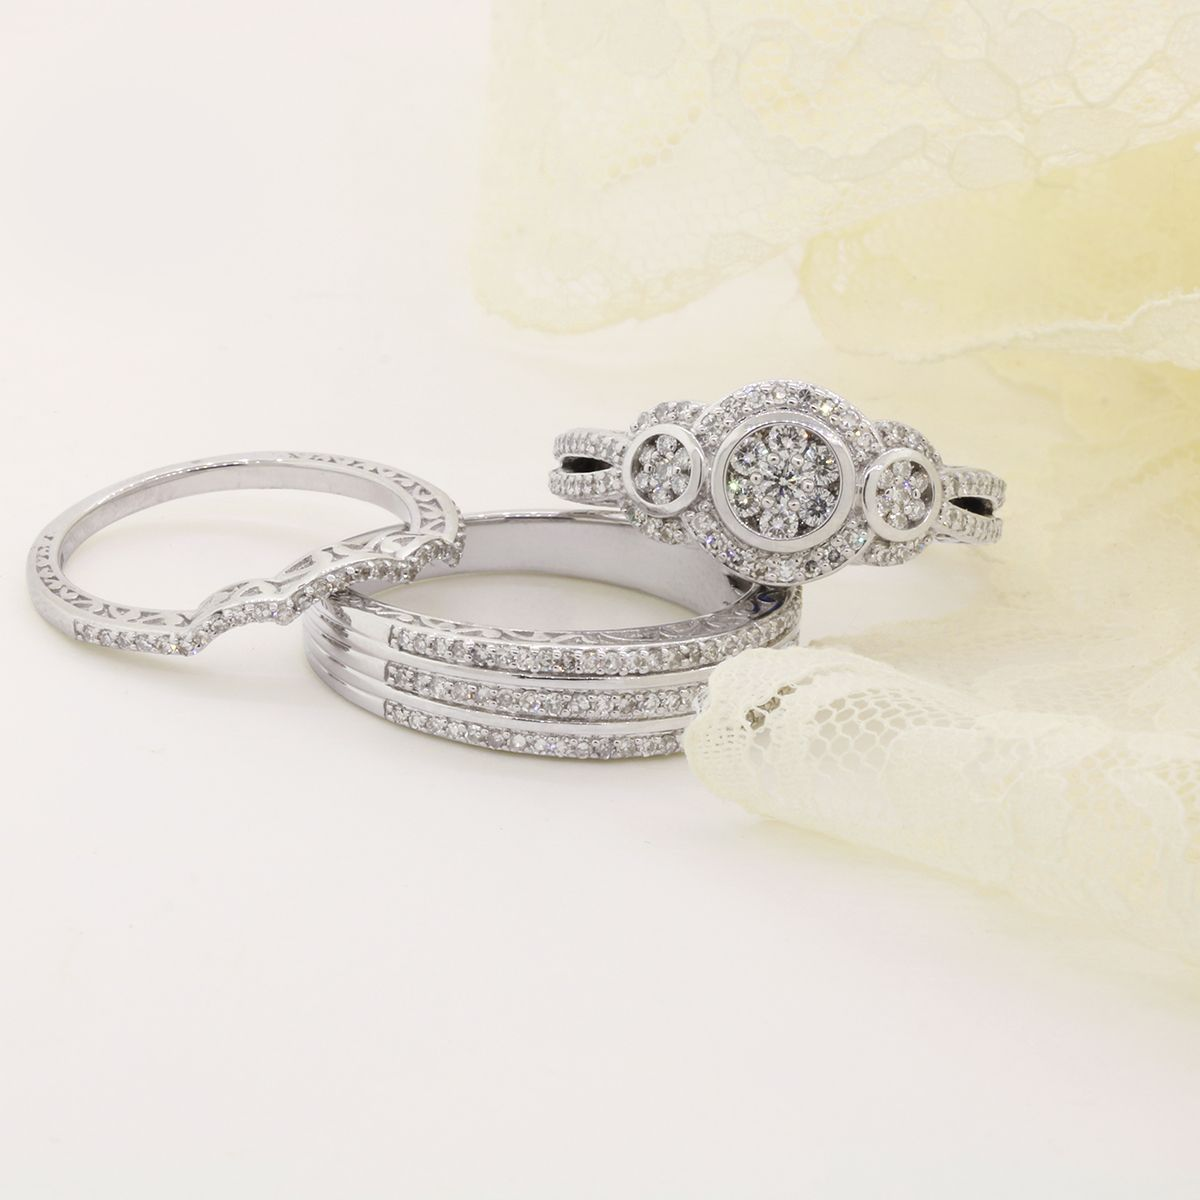 1 1 4 Carat Total Weight Diamond Trio Ring Set Shop The Trilogy Inspired Andromeda His And Hers Wedding Ring Set Matching Wedding Rings Rings Wedding Rings